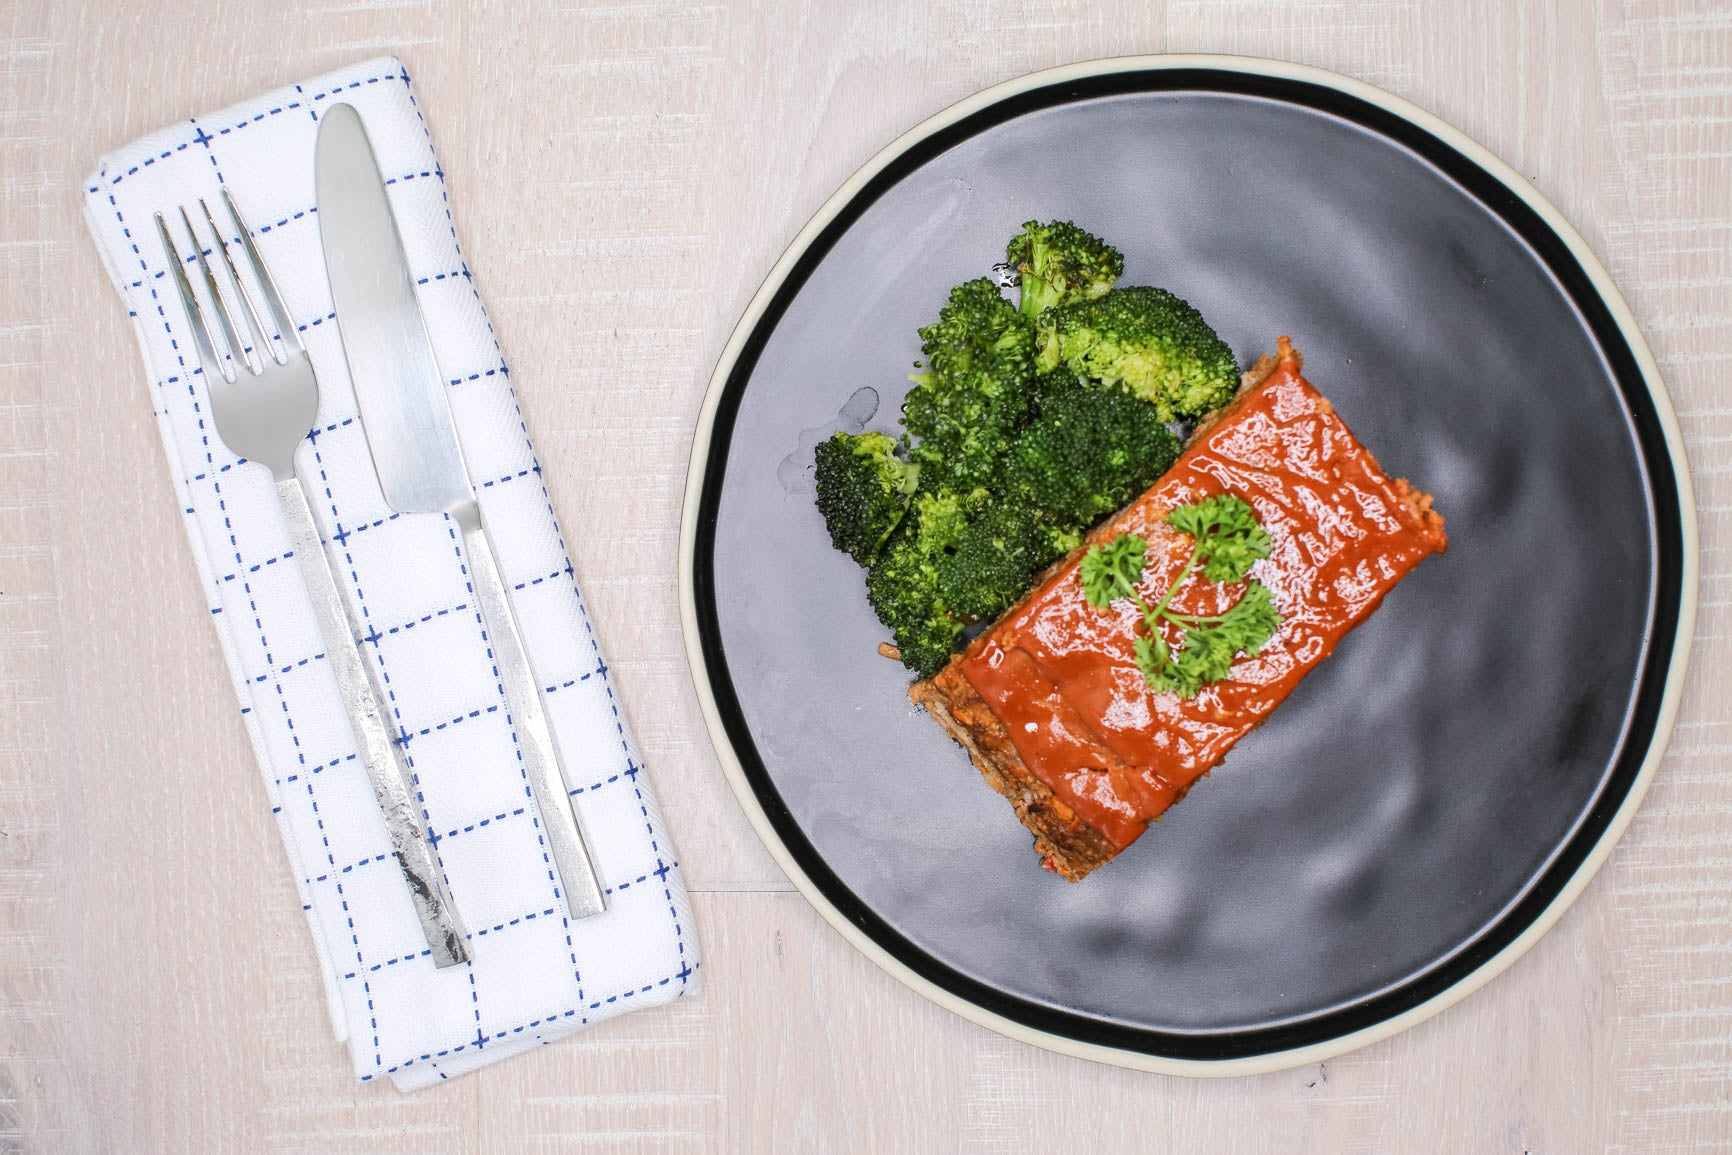 Beef & Vegetable Meatloaf w/ Roasted Broccoli